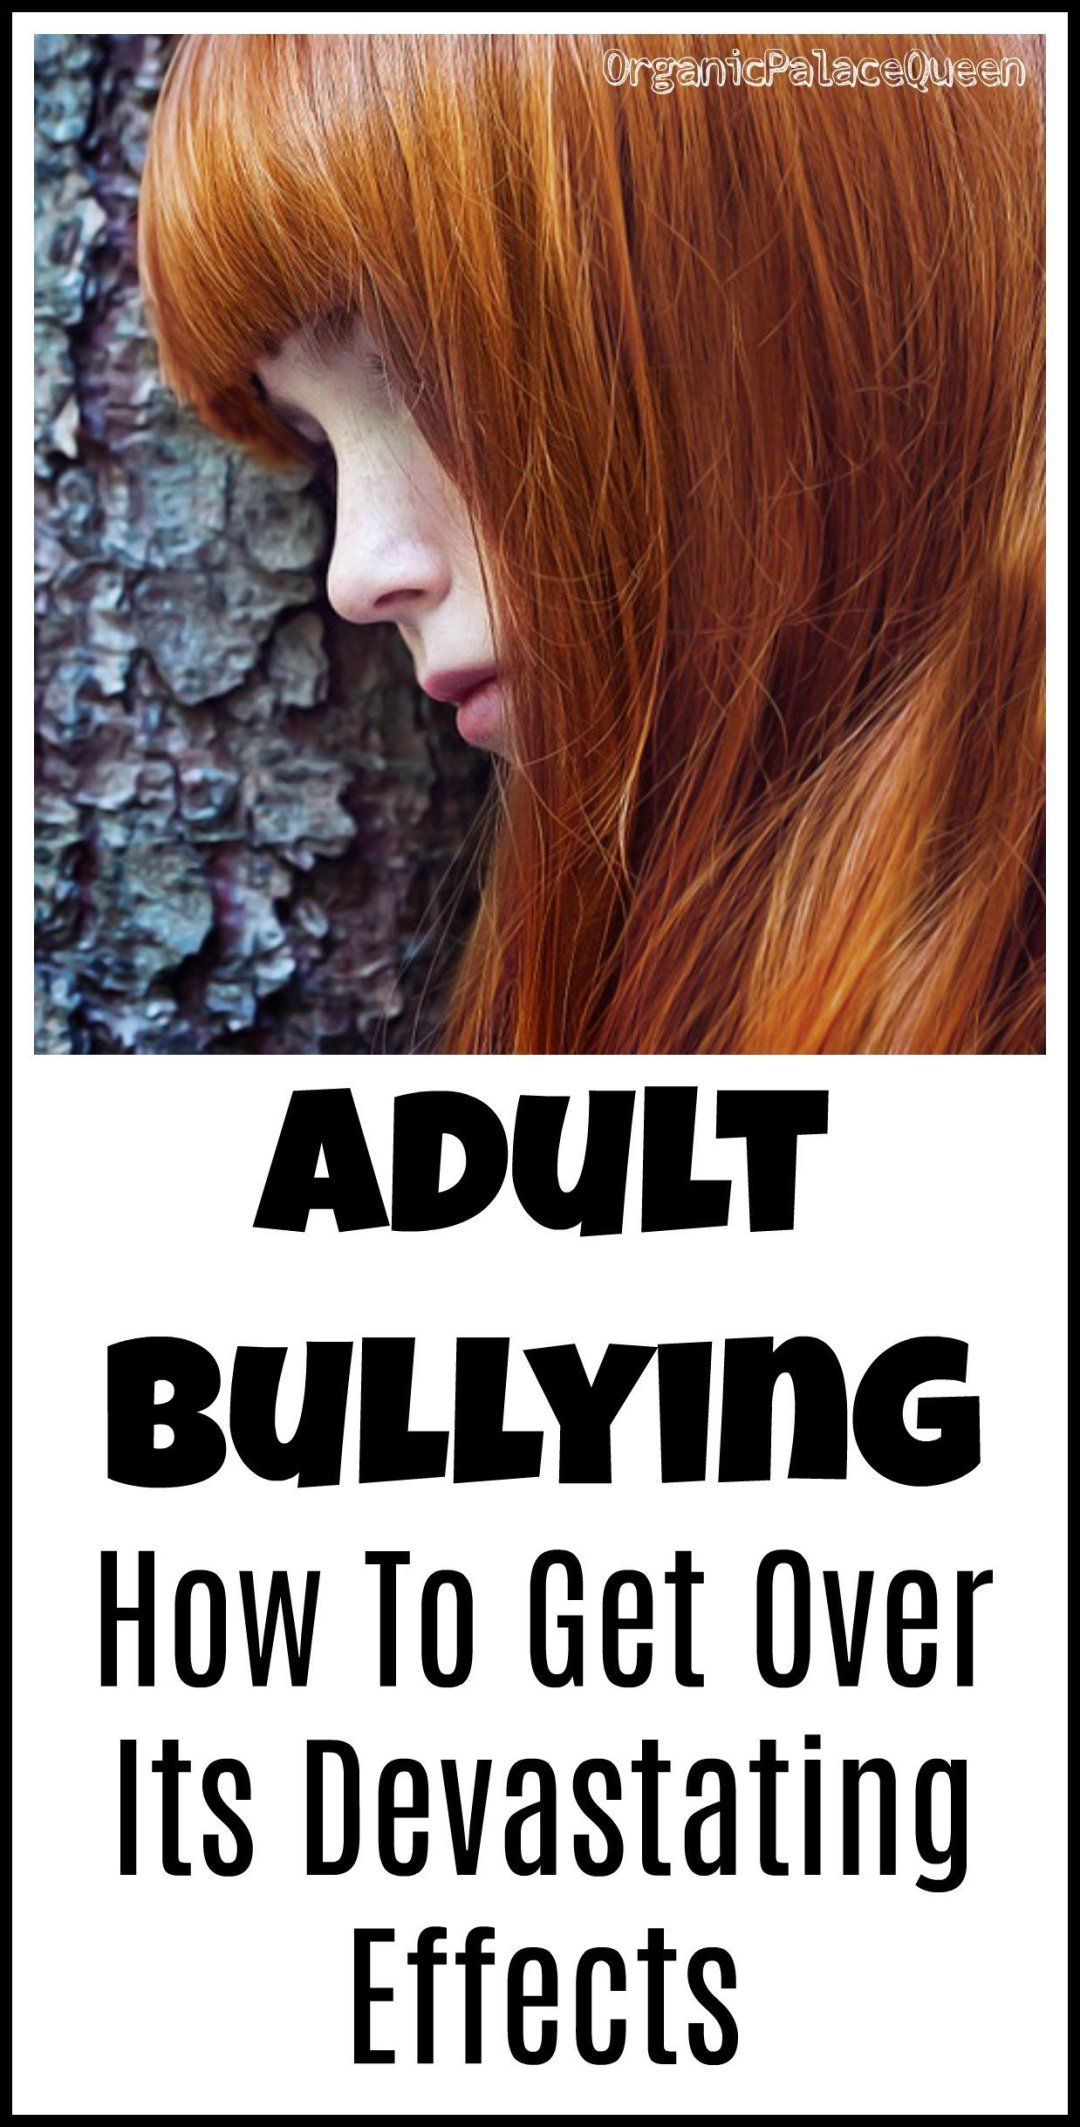 How to get over the devastating effects of adult bullying